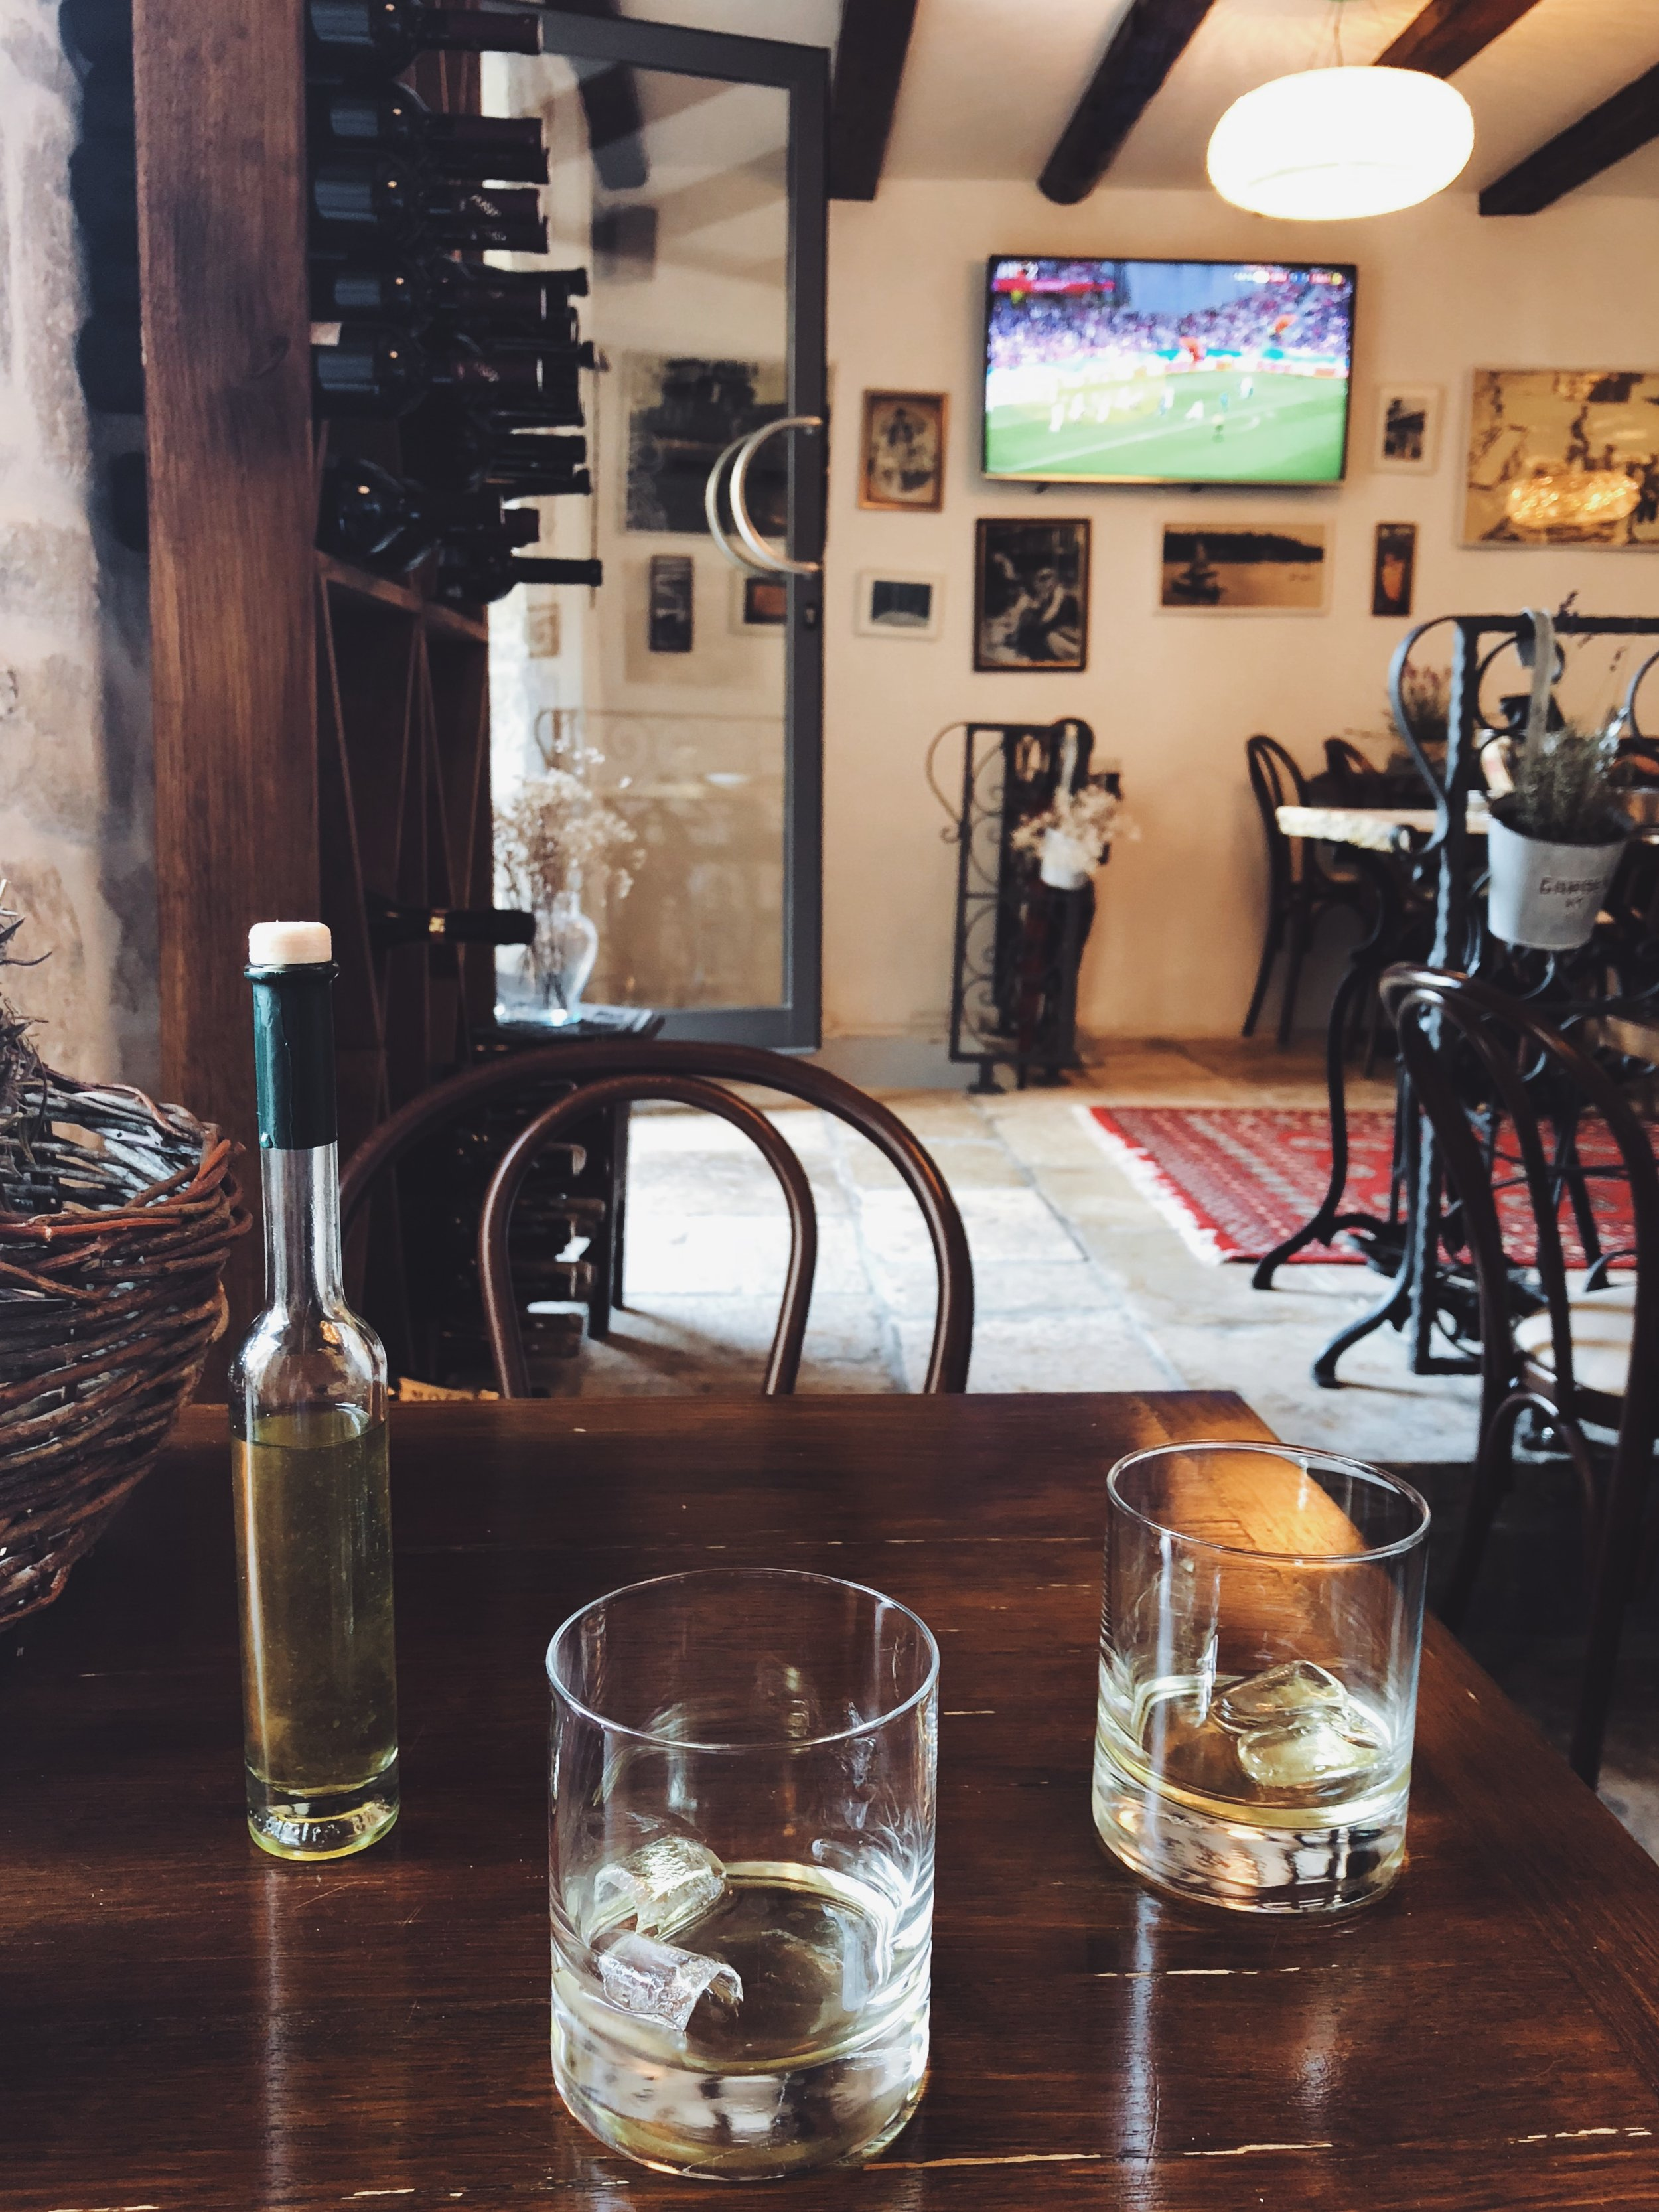 - After we settled in, we headed downstairs to the restaurant/bar and sipped on some limoncello while watching a World Cup match (it was such a great time to be in Europe)! That night, we explored the old town by foot and enjoyed a warm summer night on a Croatian island.